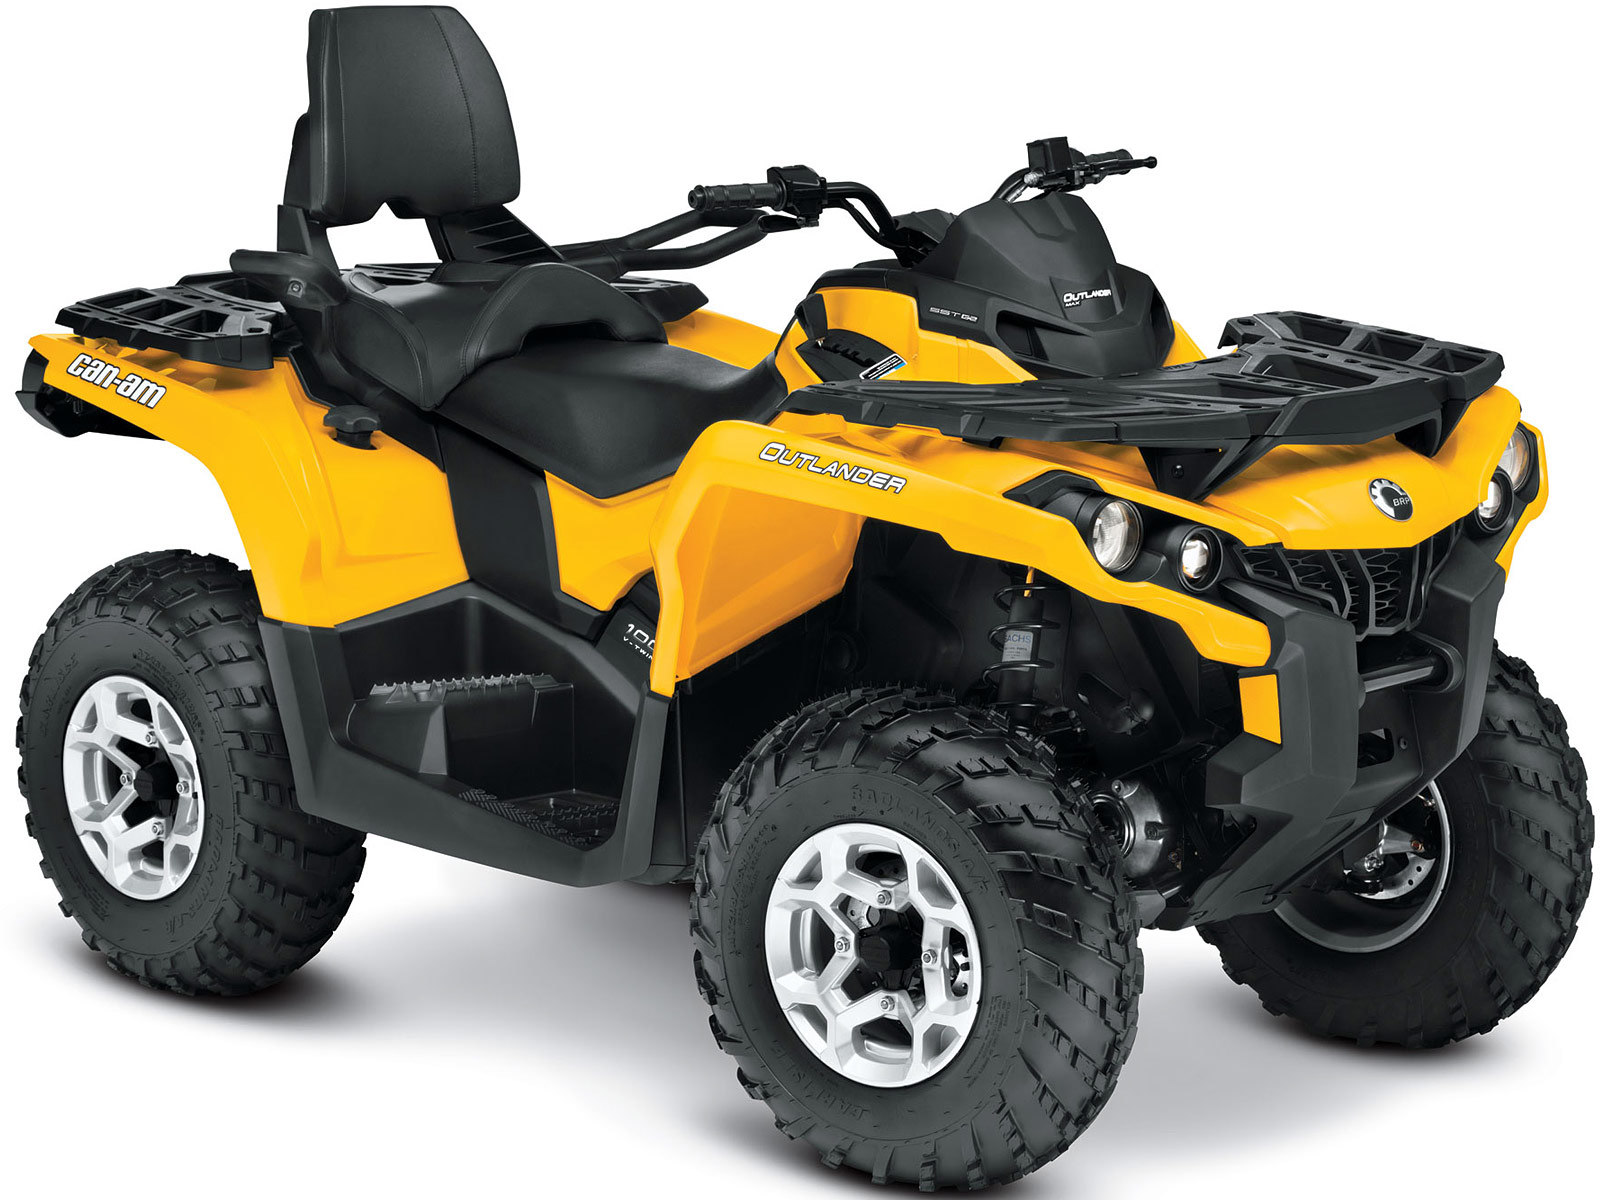 atv insurance information 2013 can am outlander max dps 1000 pictures. Black Bedroom Furniture Sets. Home Design Ideas